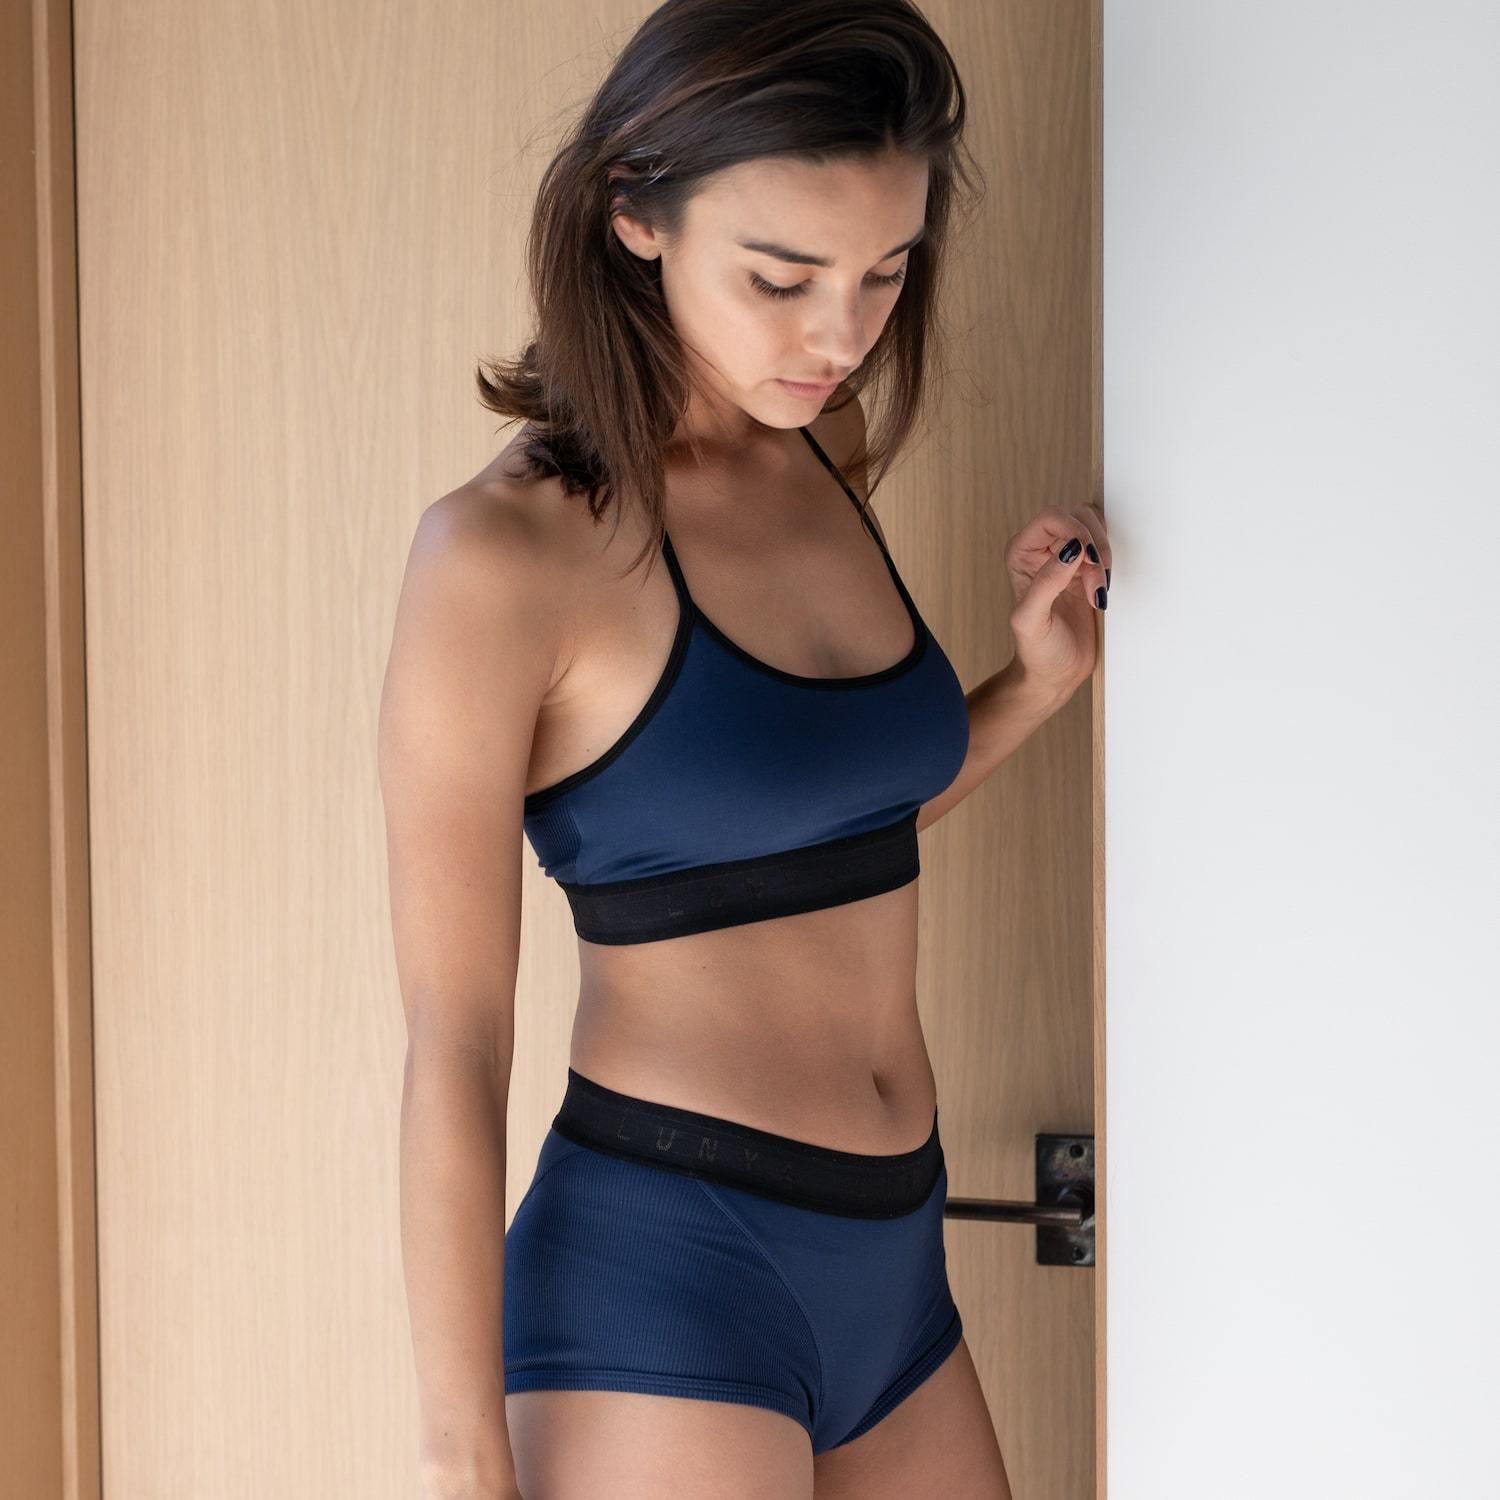 Lunya Sleepwear Supportive Modal Sleep Bralette - #Deep Night/Black